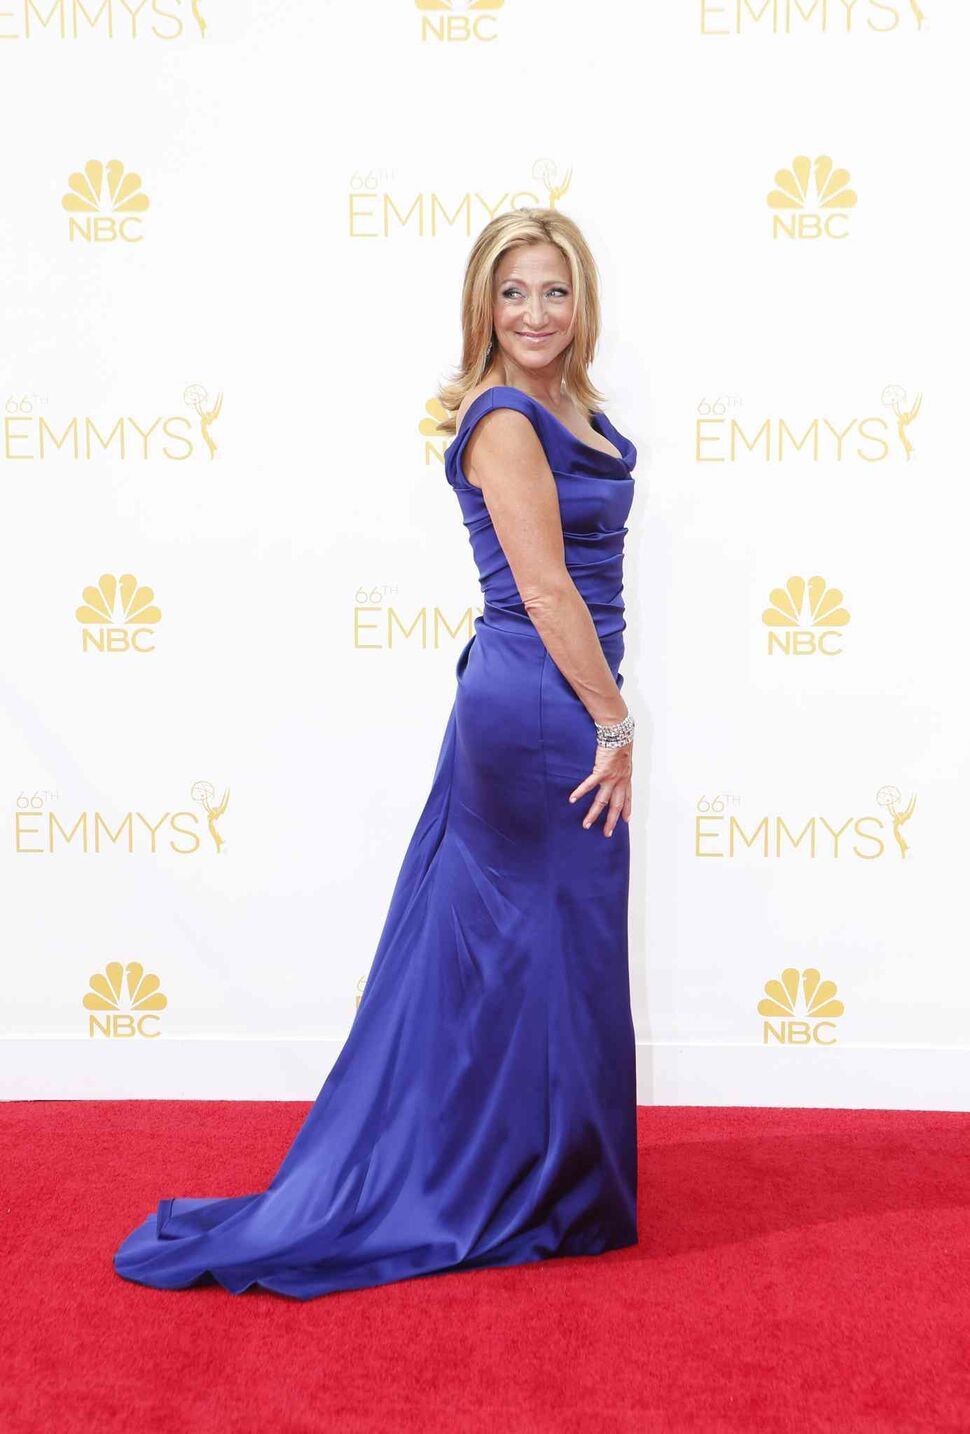 Edie Falco (Nurse Jackie) arrives for the 66th Annual Primetime Emmy Awards at Nokia Theatre at L.A. Live in Los Angeles Monday. (Tribune Media MCT)